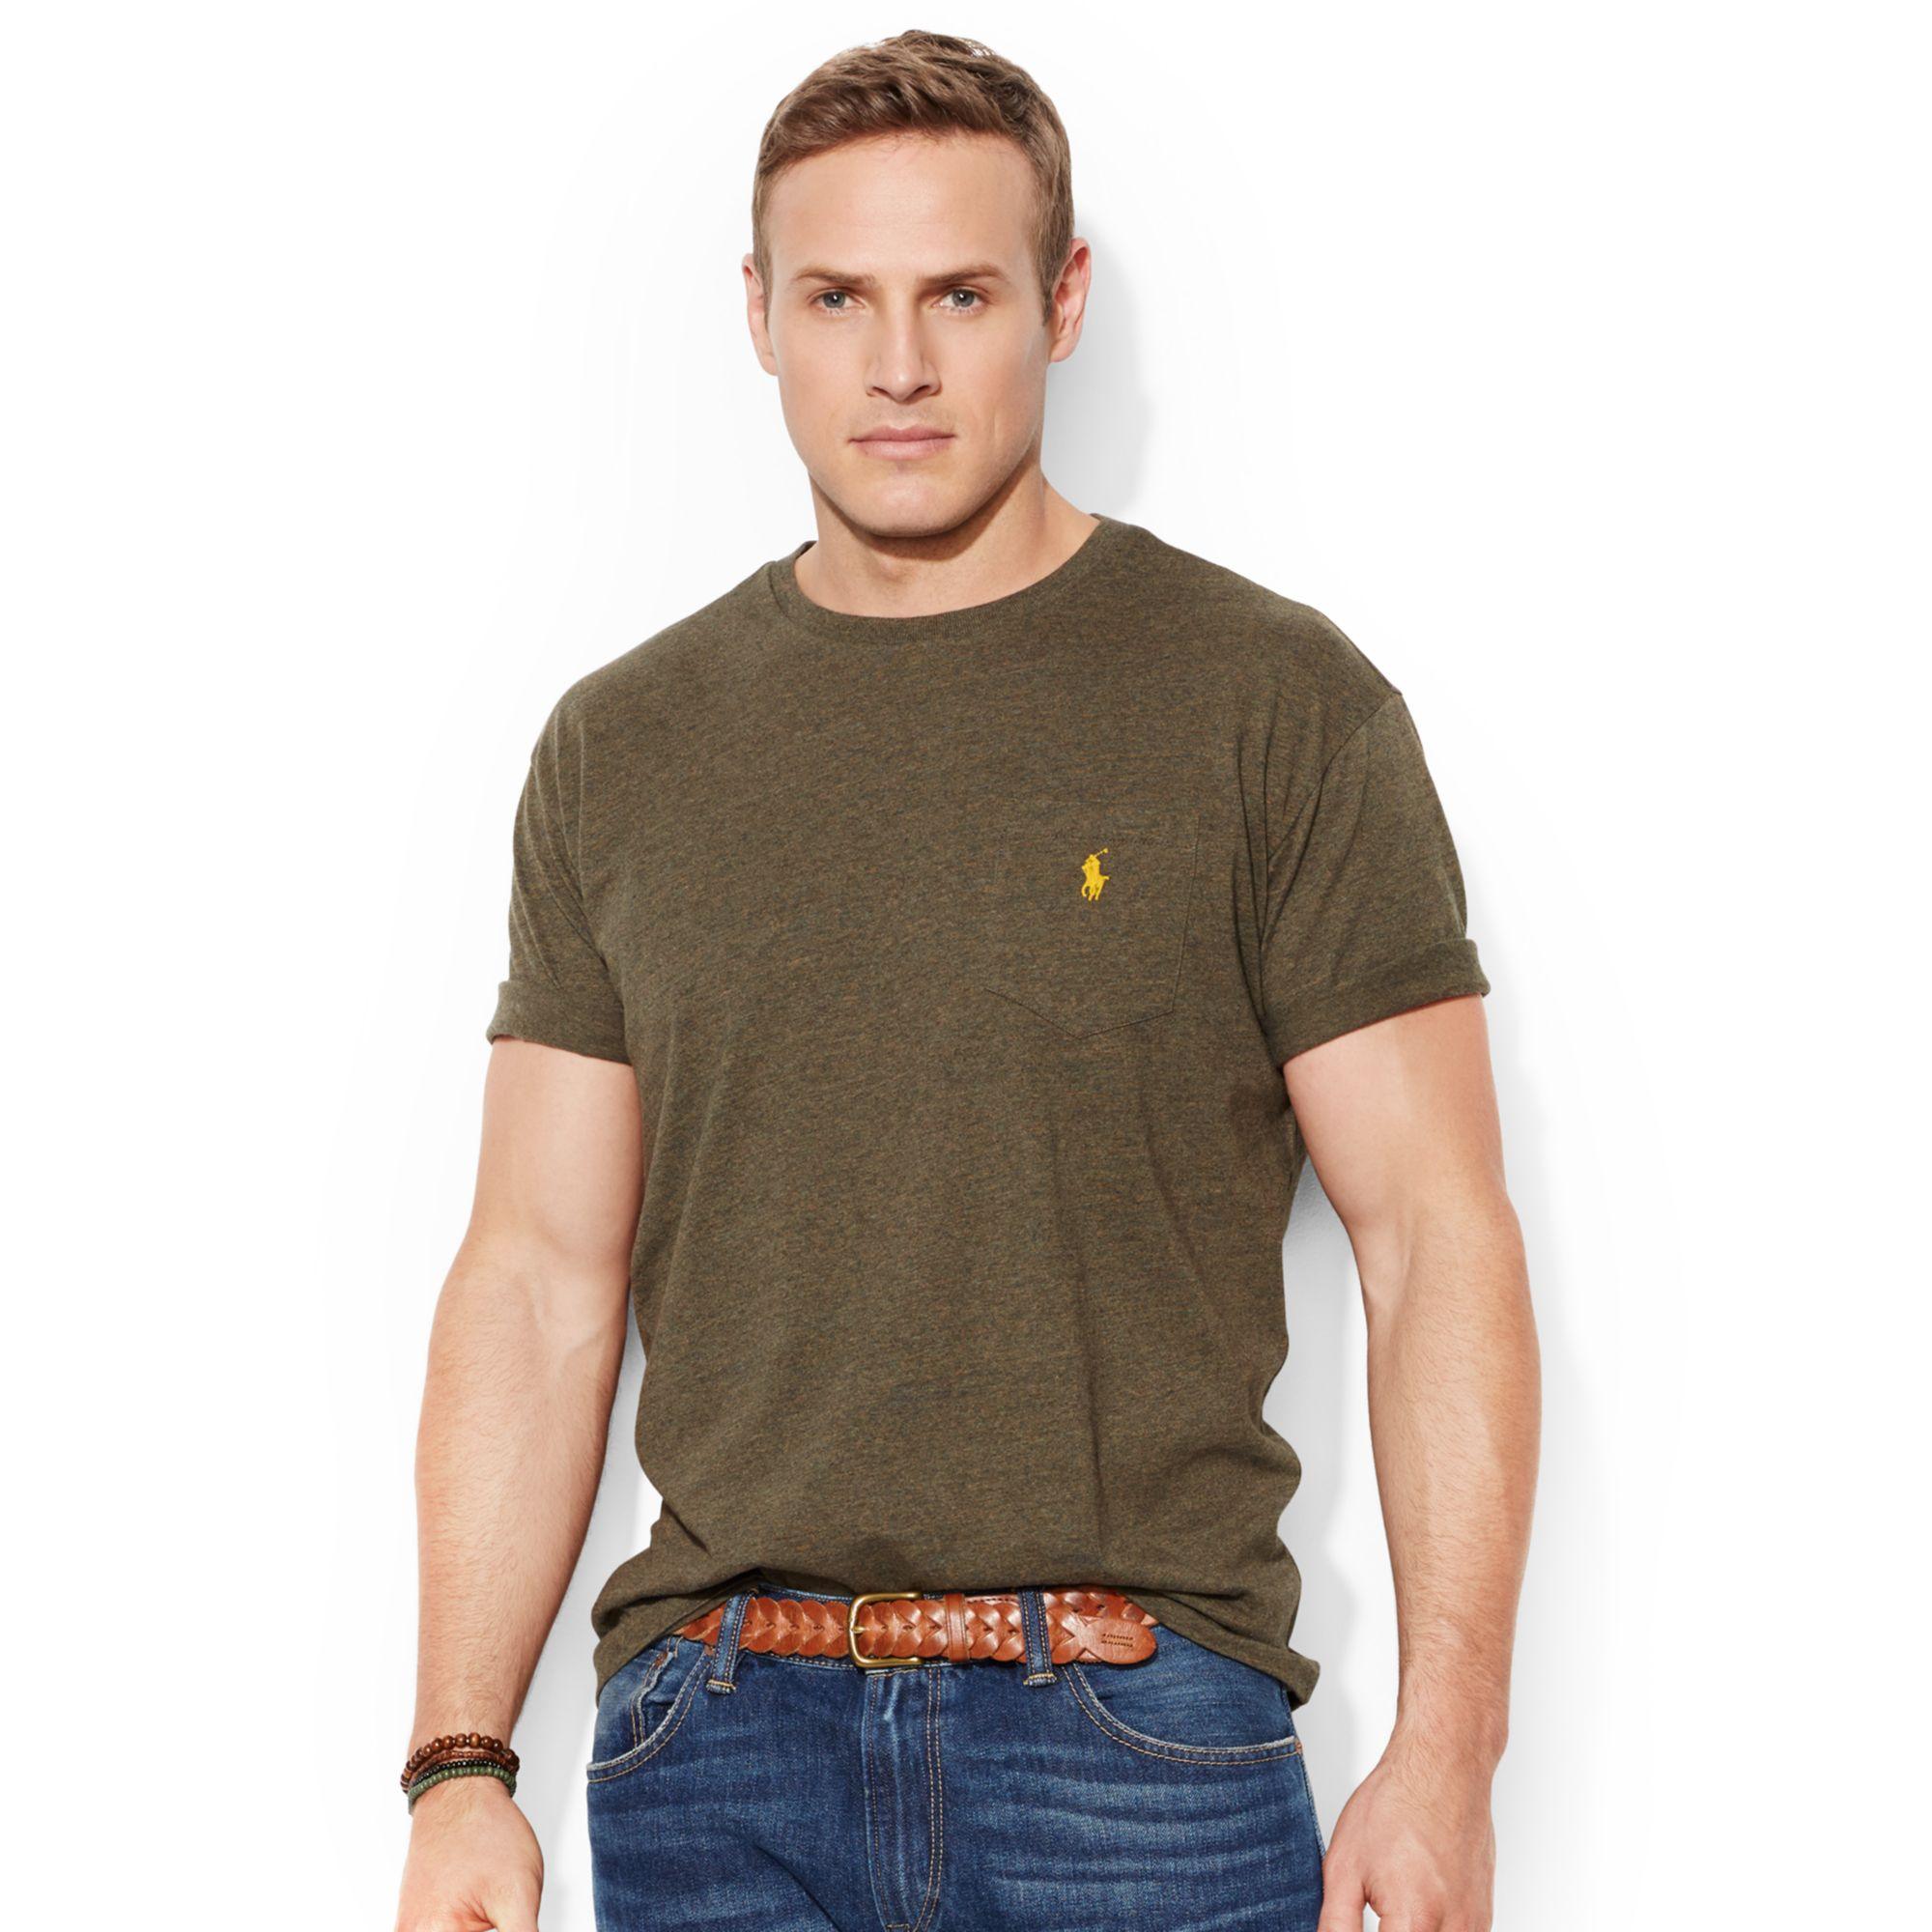 Polo ralph lauren pocket tee shirts in green for men for Polo t shirts with pockets